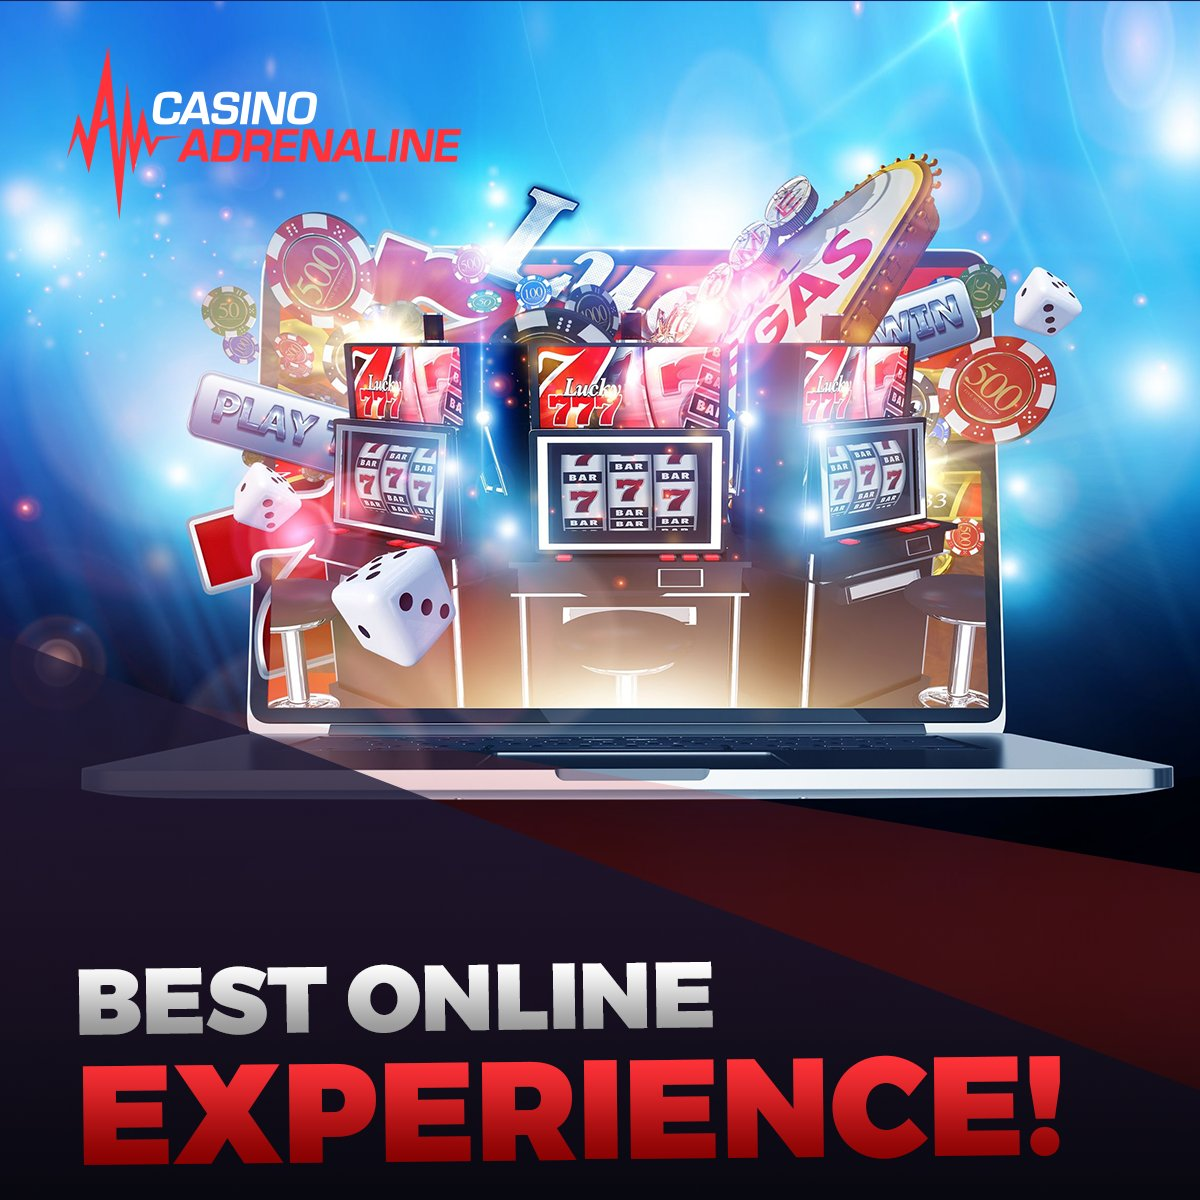 test Twitter Media - Casino Adrenaline, unforgettable online casino experience! https://t.co/oSXfIB6U5E https://t.co/BBUK40vQc3